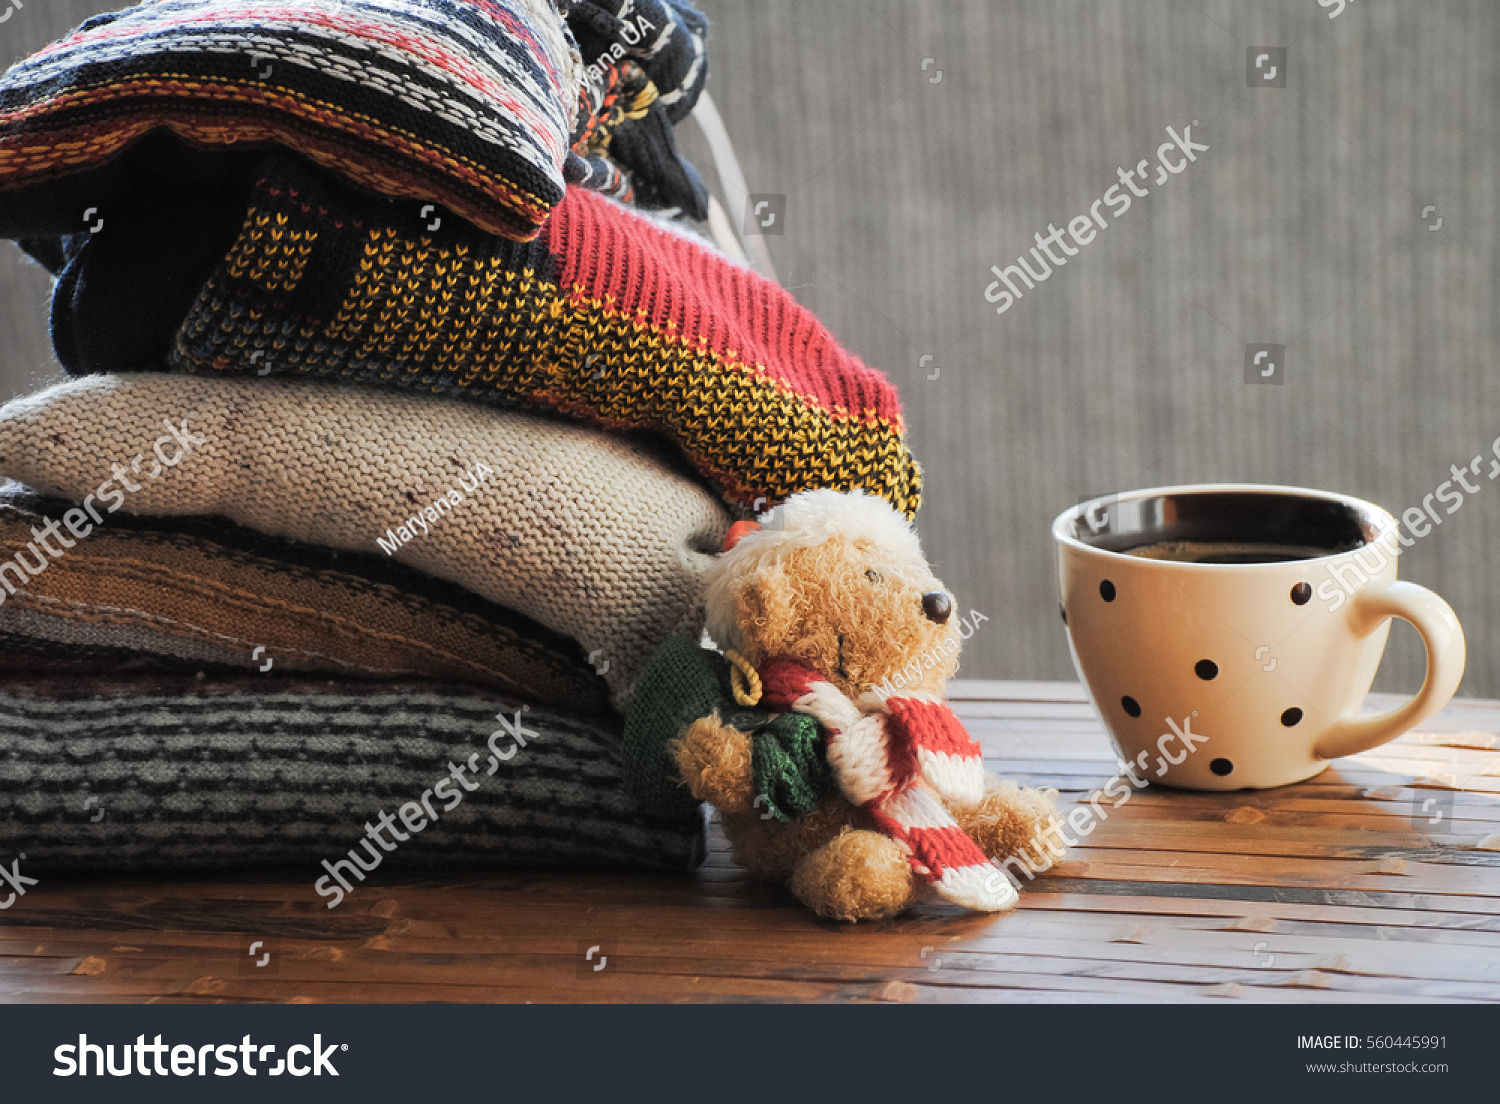 Warm Knitted Sweatera Cup Coffee Toy Stock Photo Edit Now